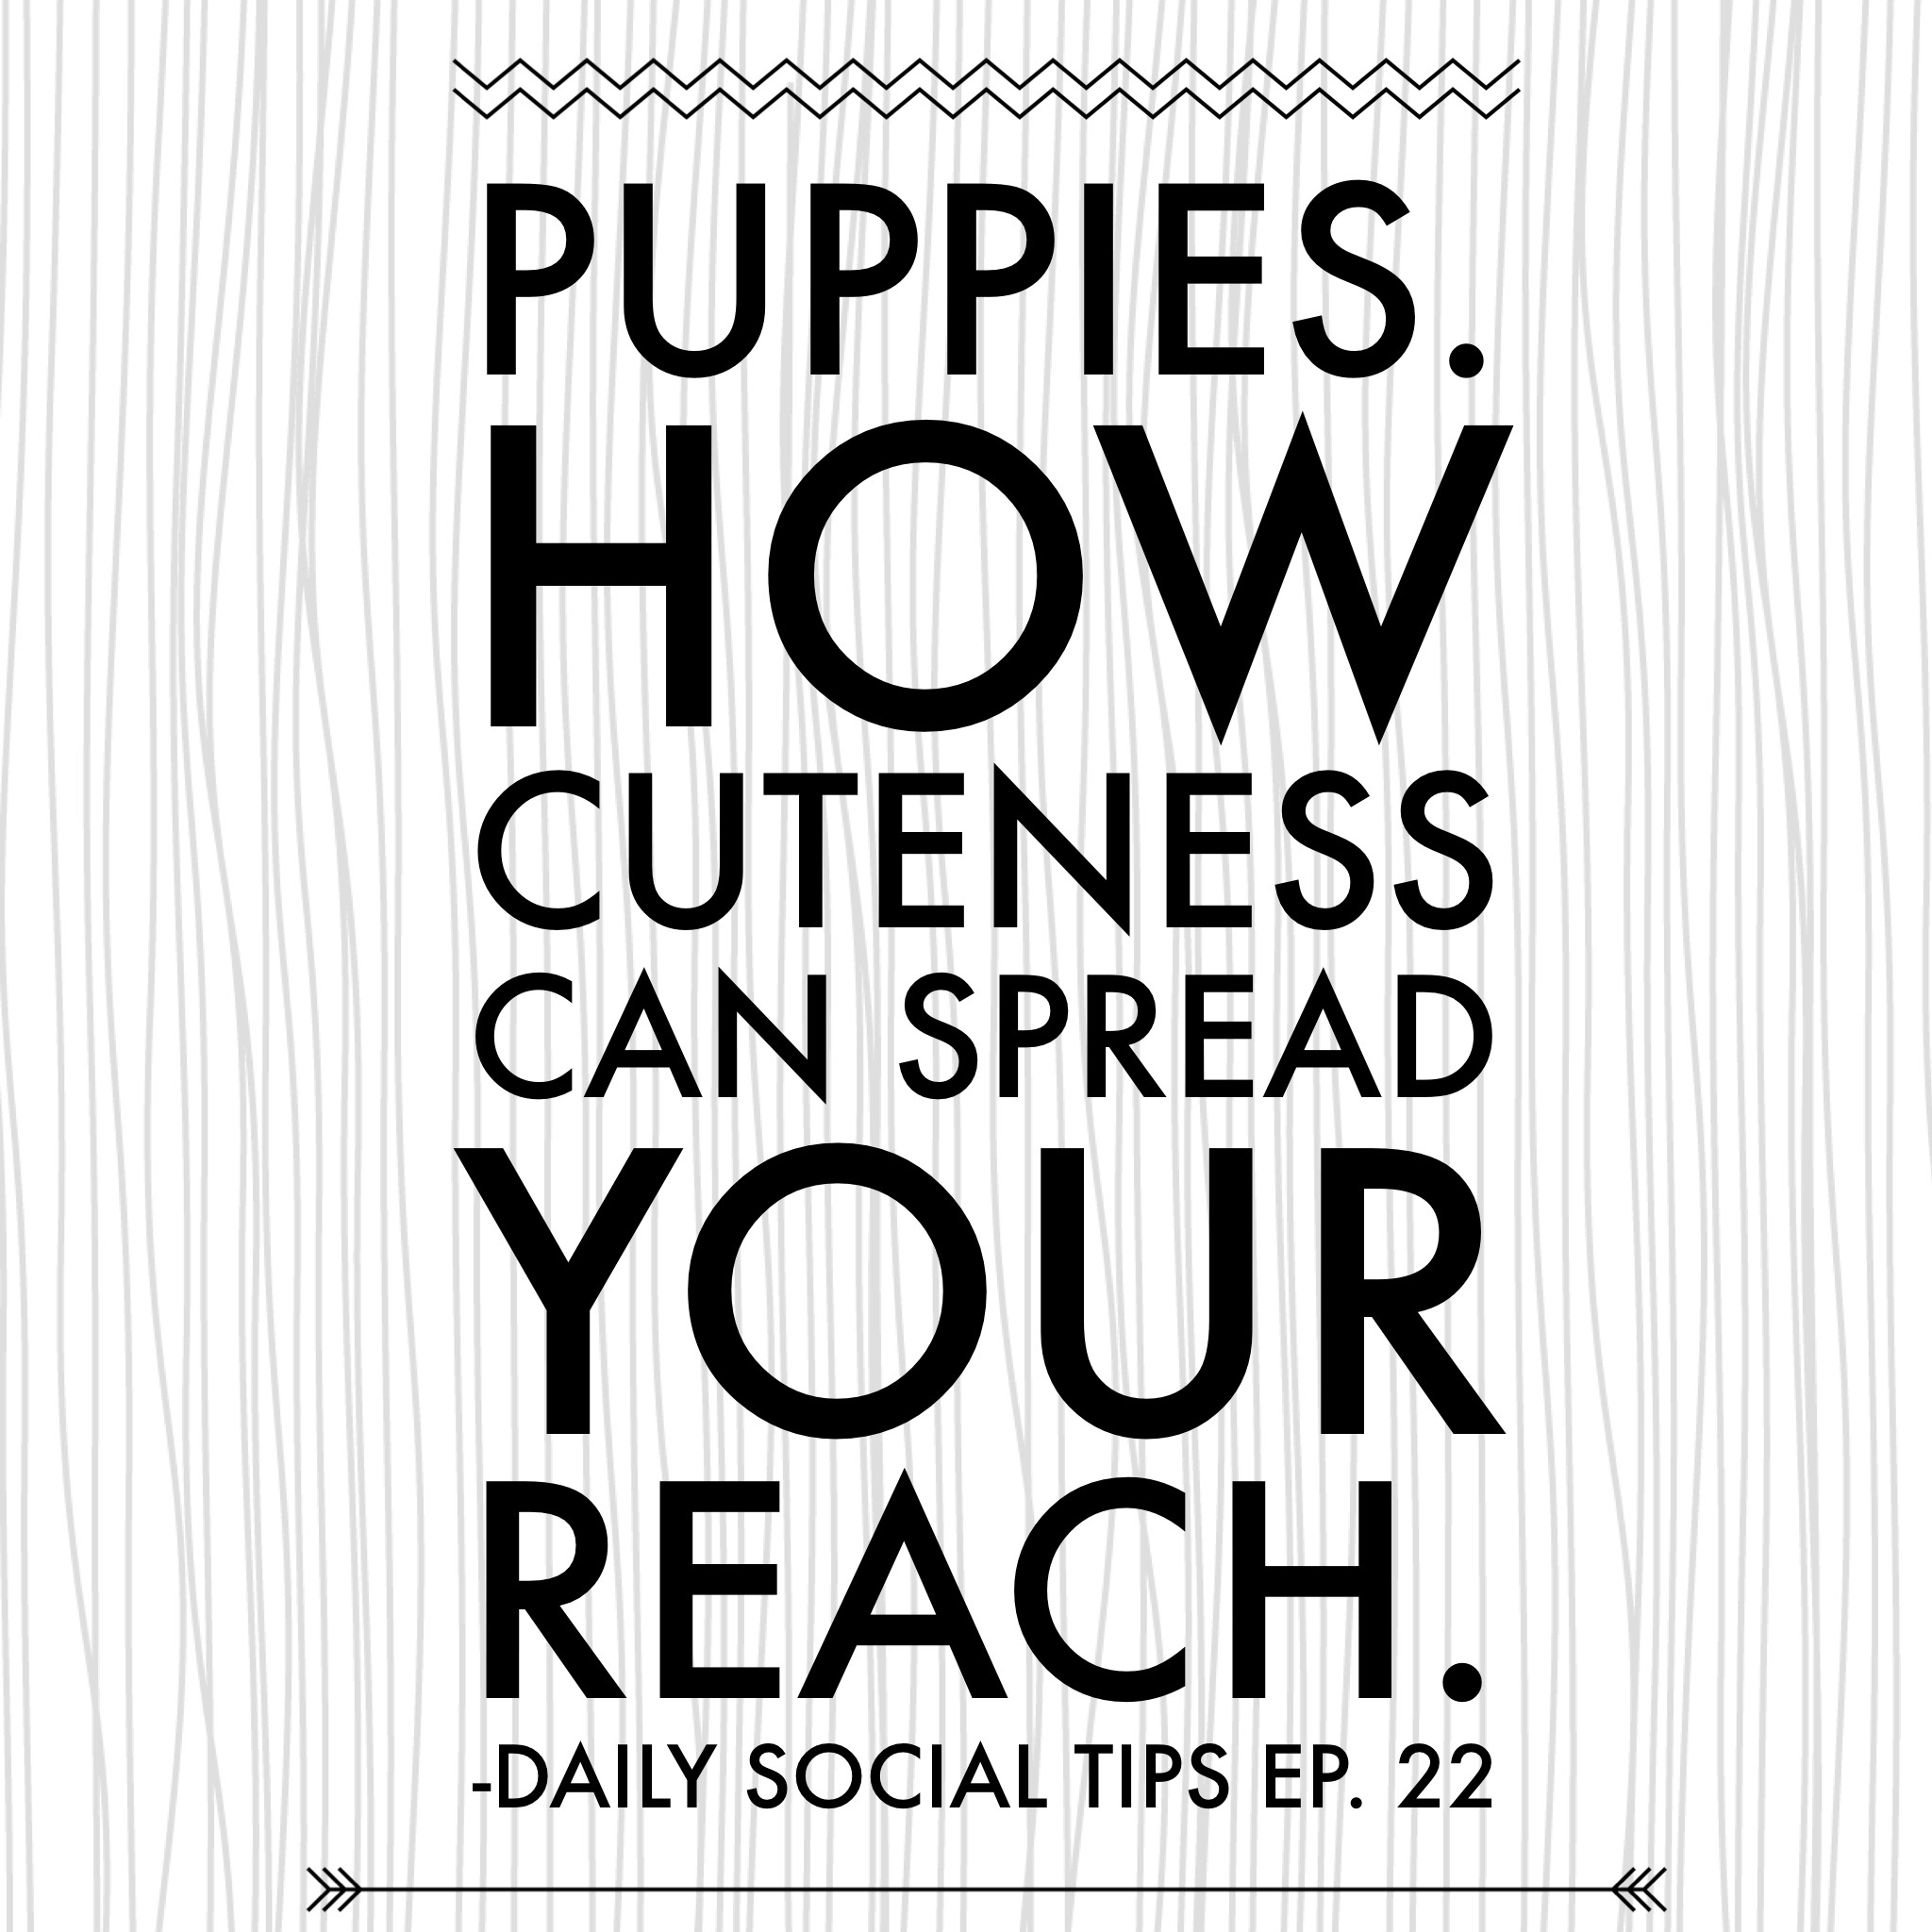 cute puppies social reach